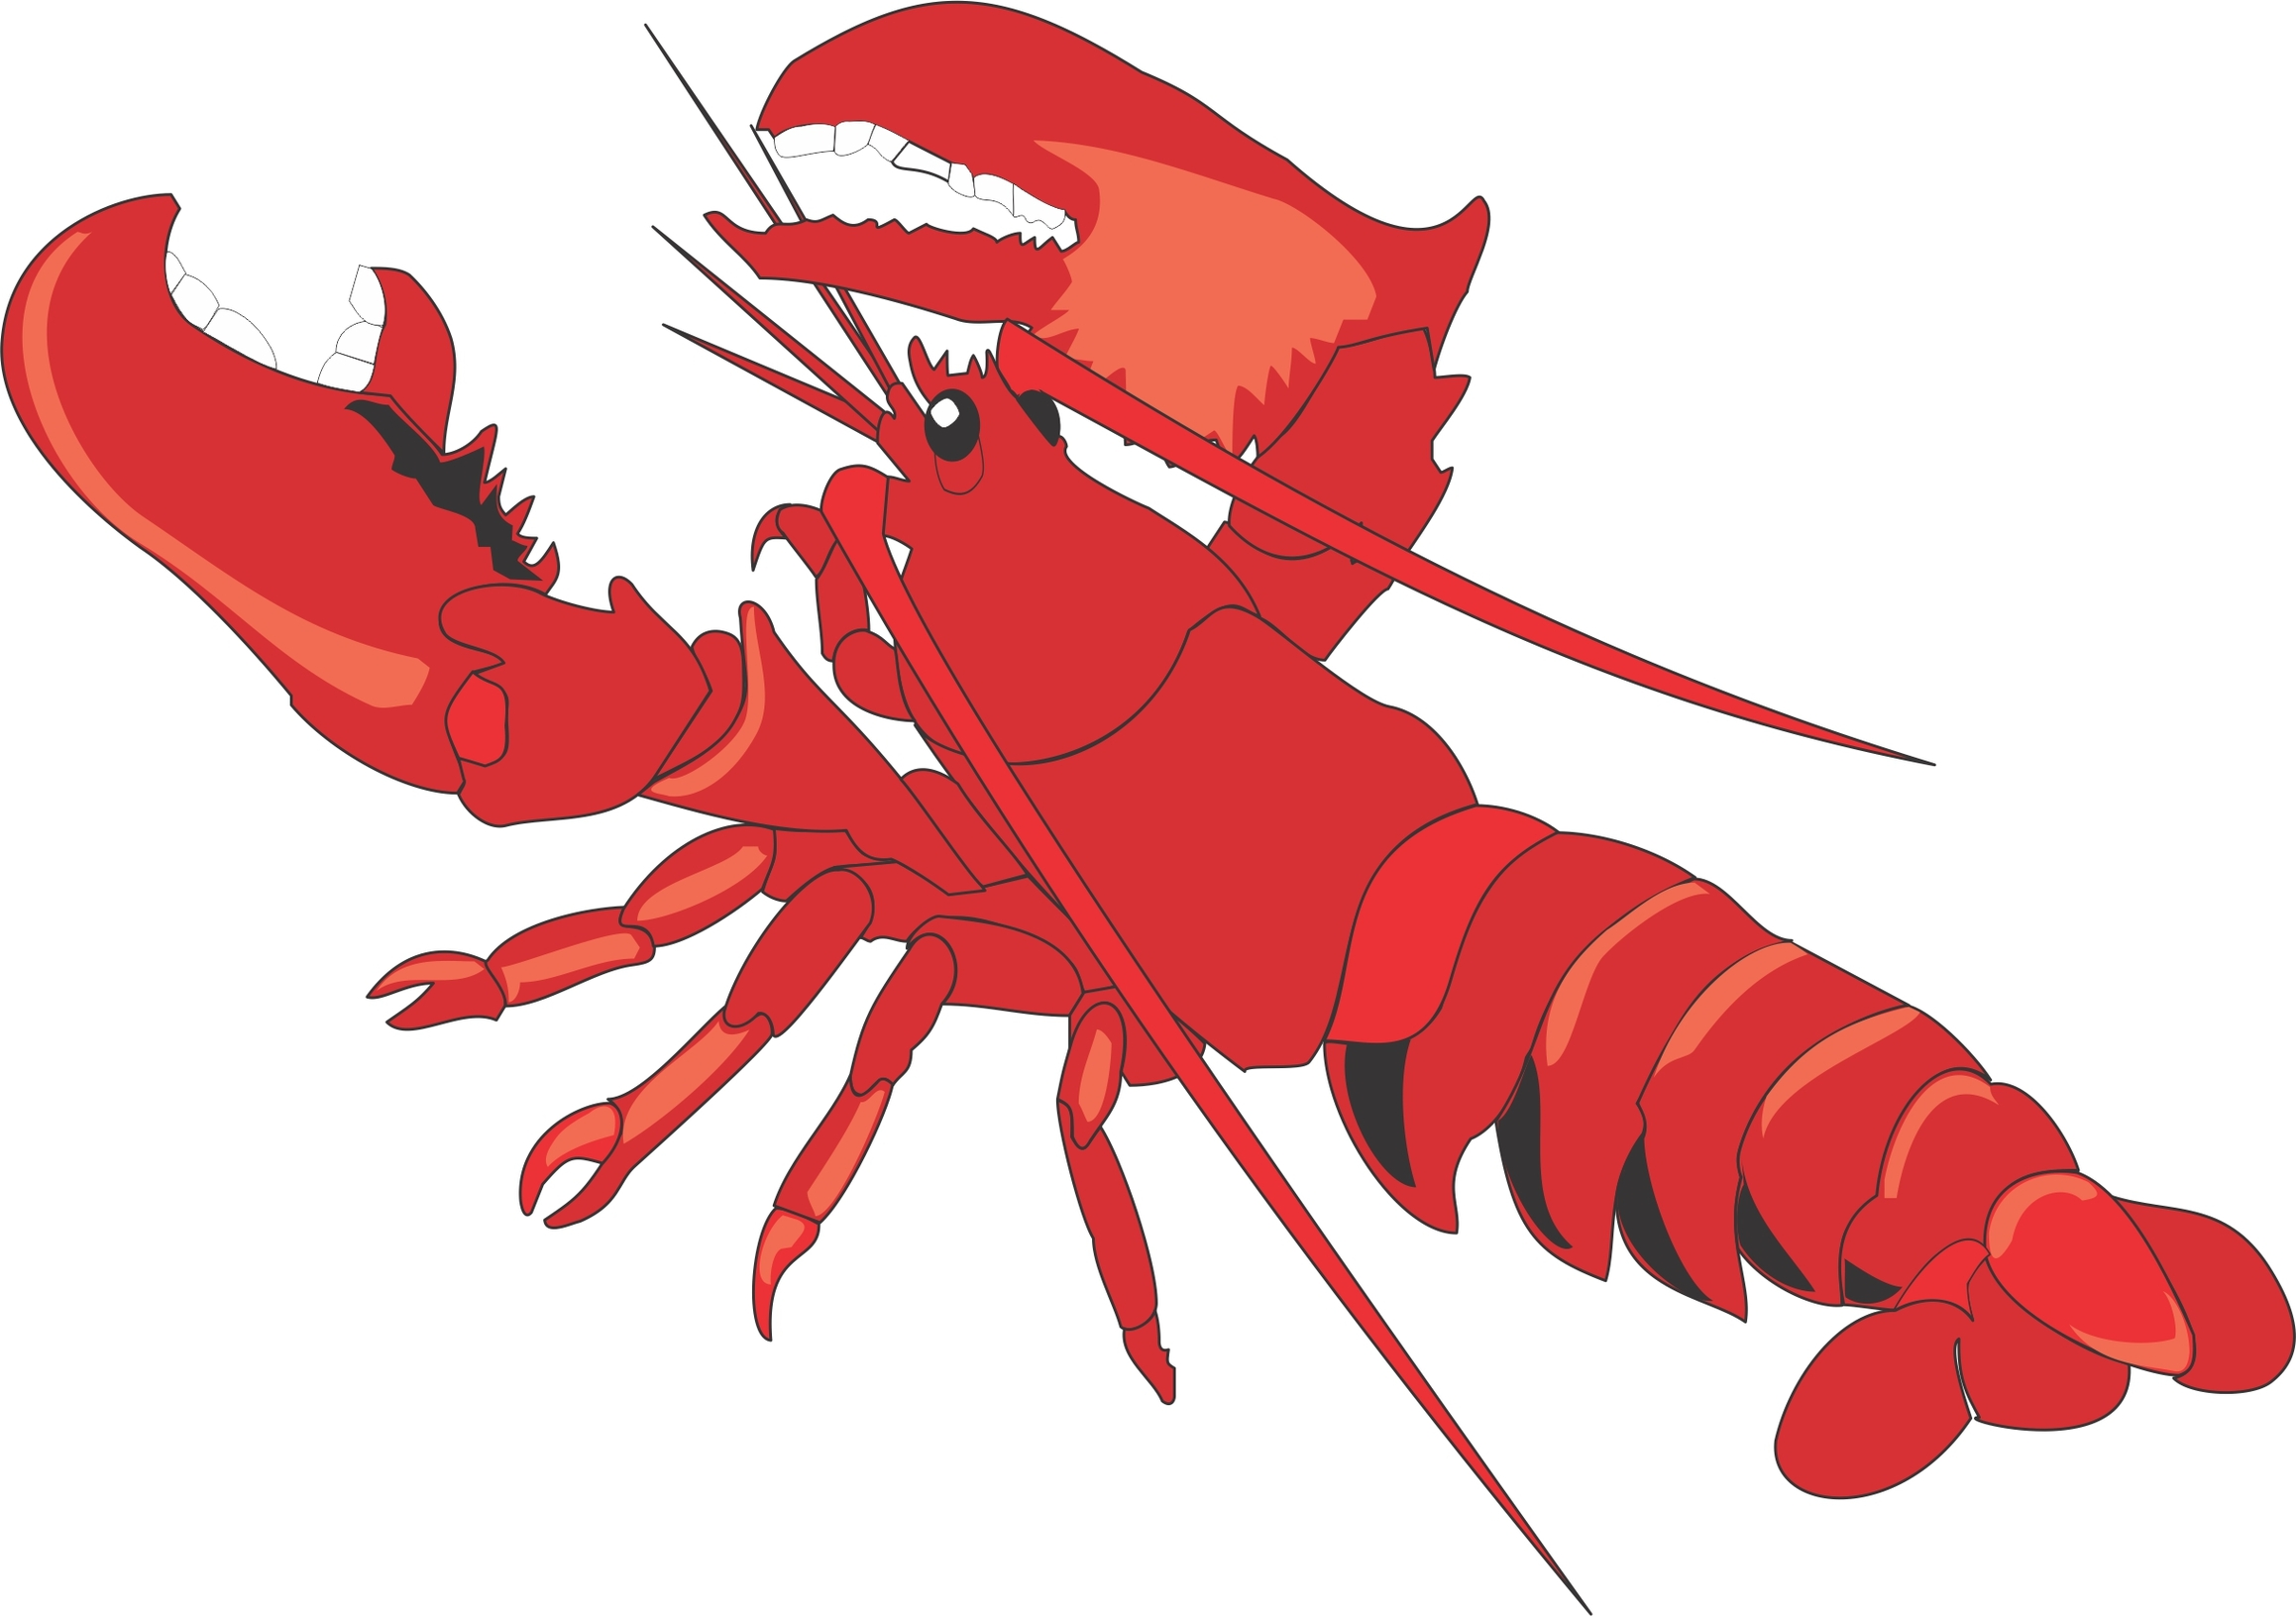 Lobster clipart #7, Download drawings